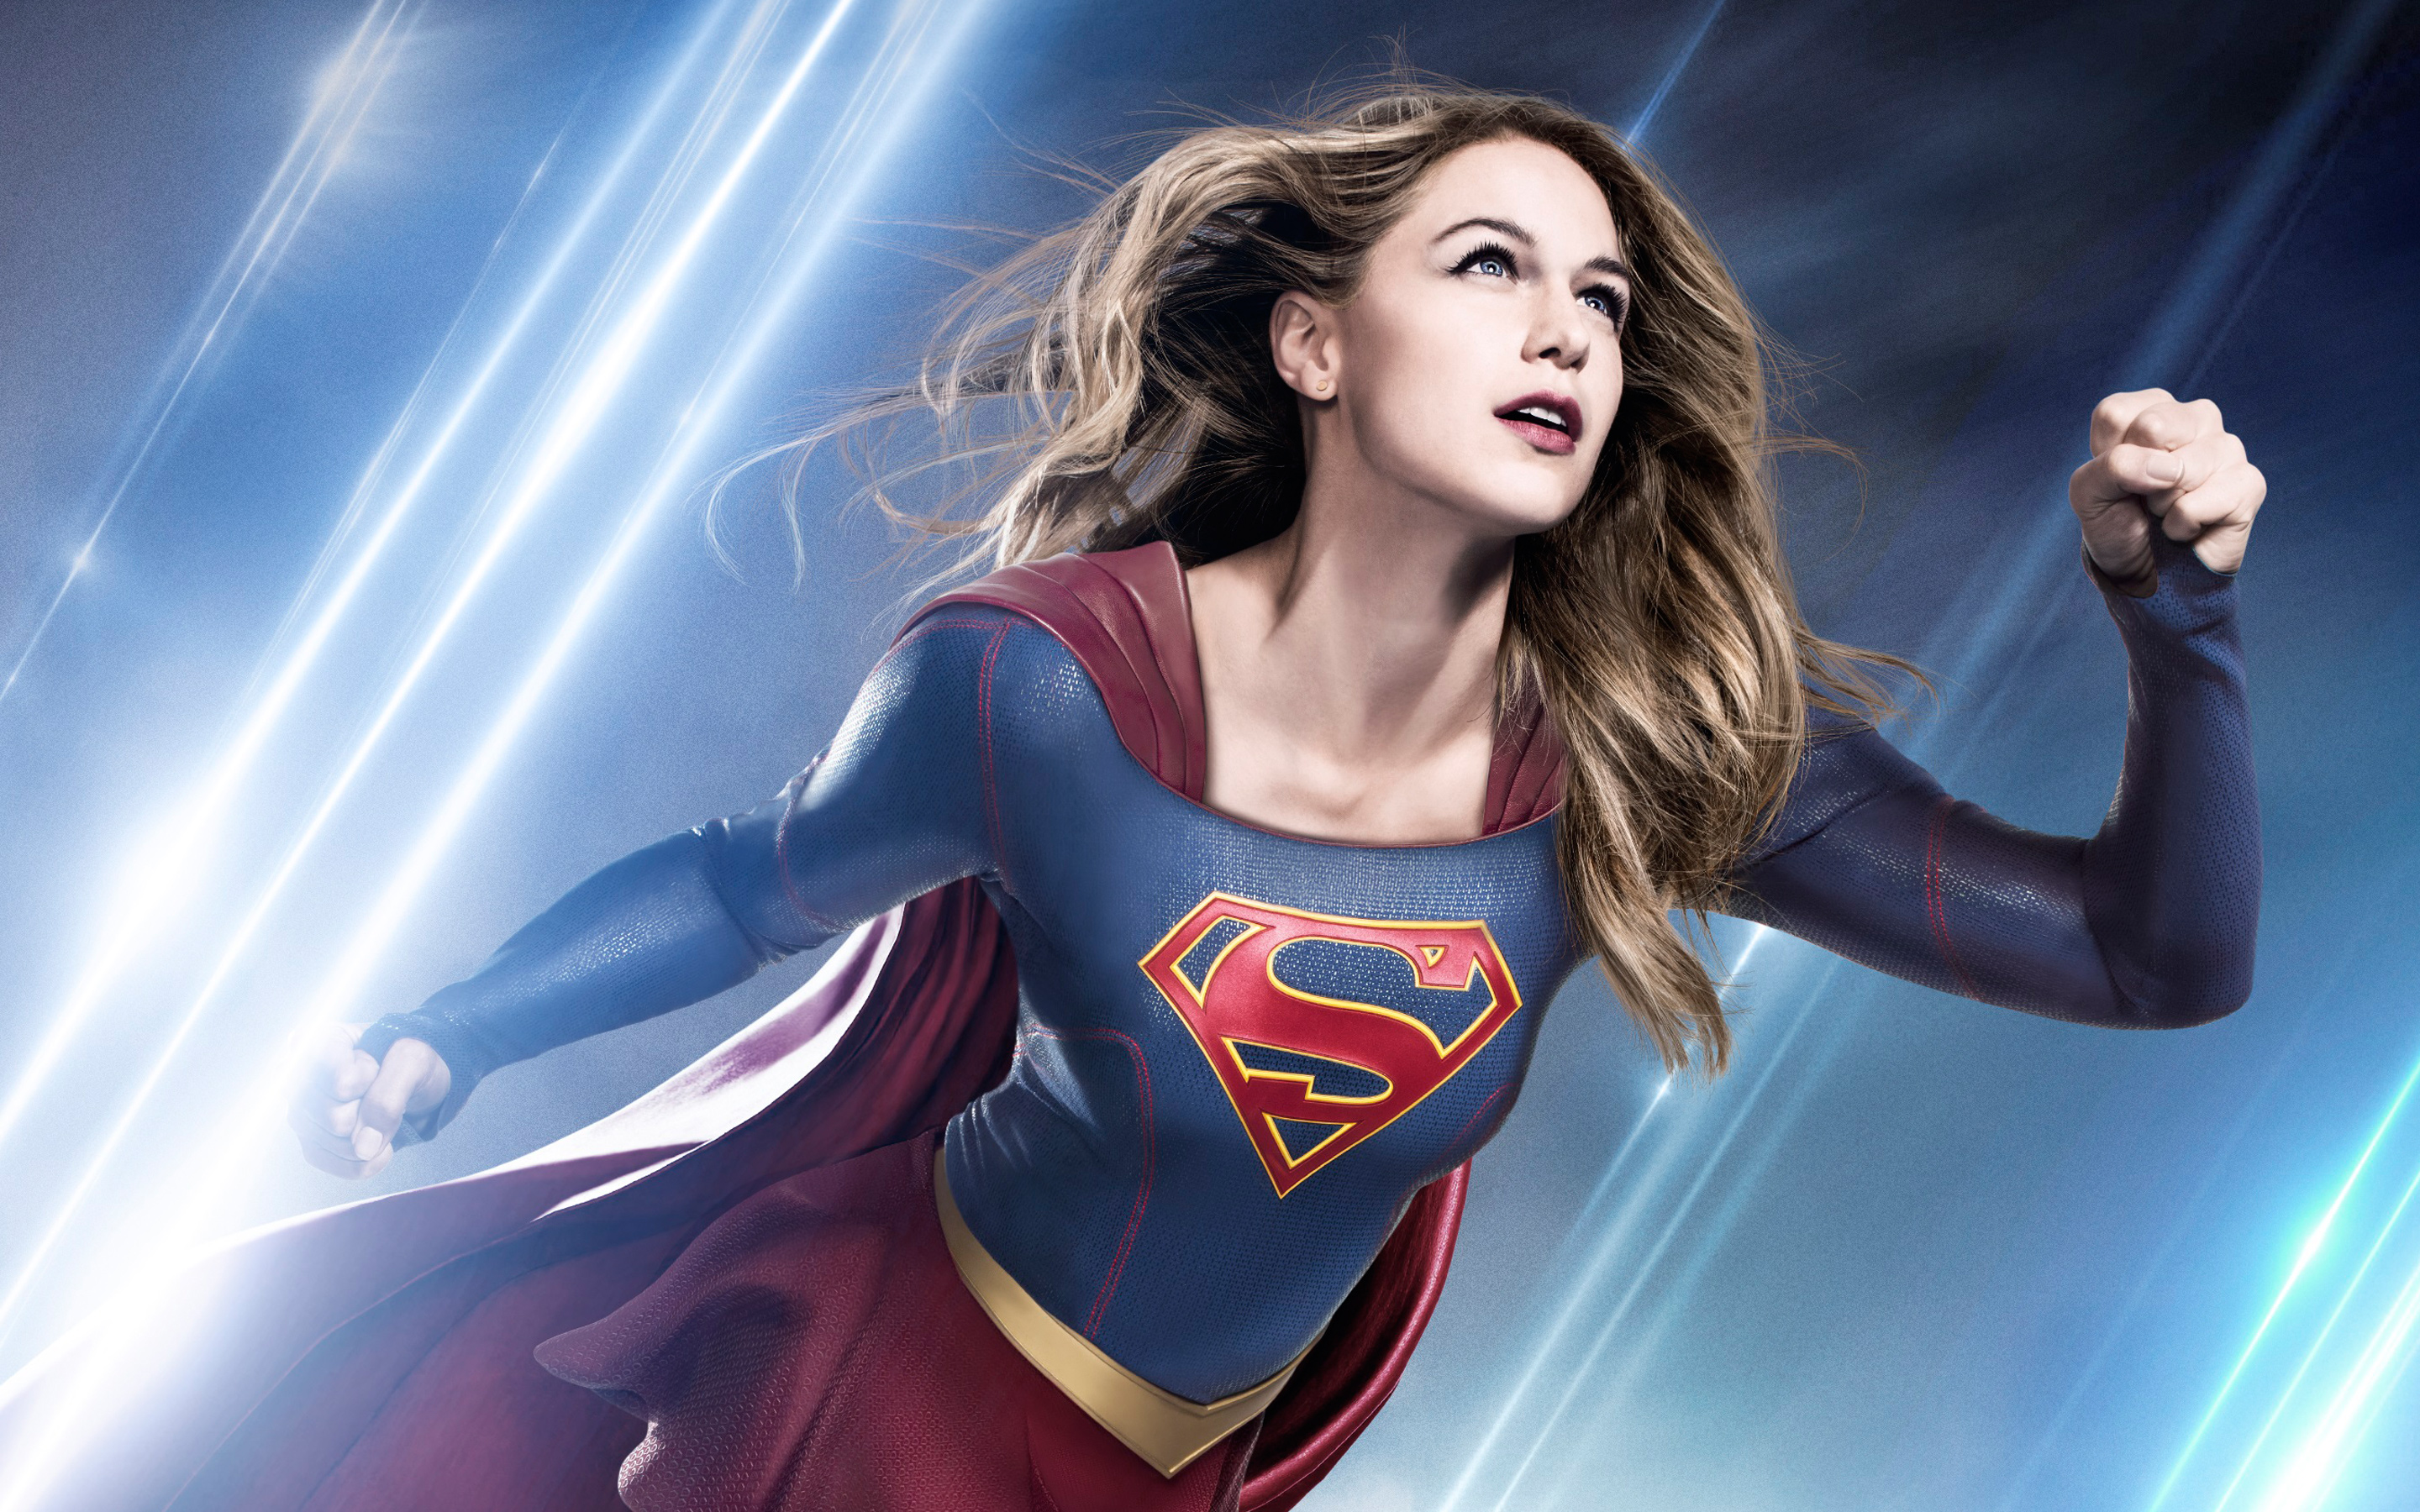 Supergirl 2017 2 Hd Tv Shows 4k Wallpapers Images